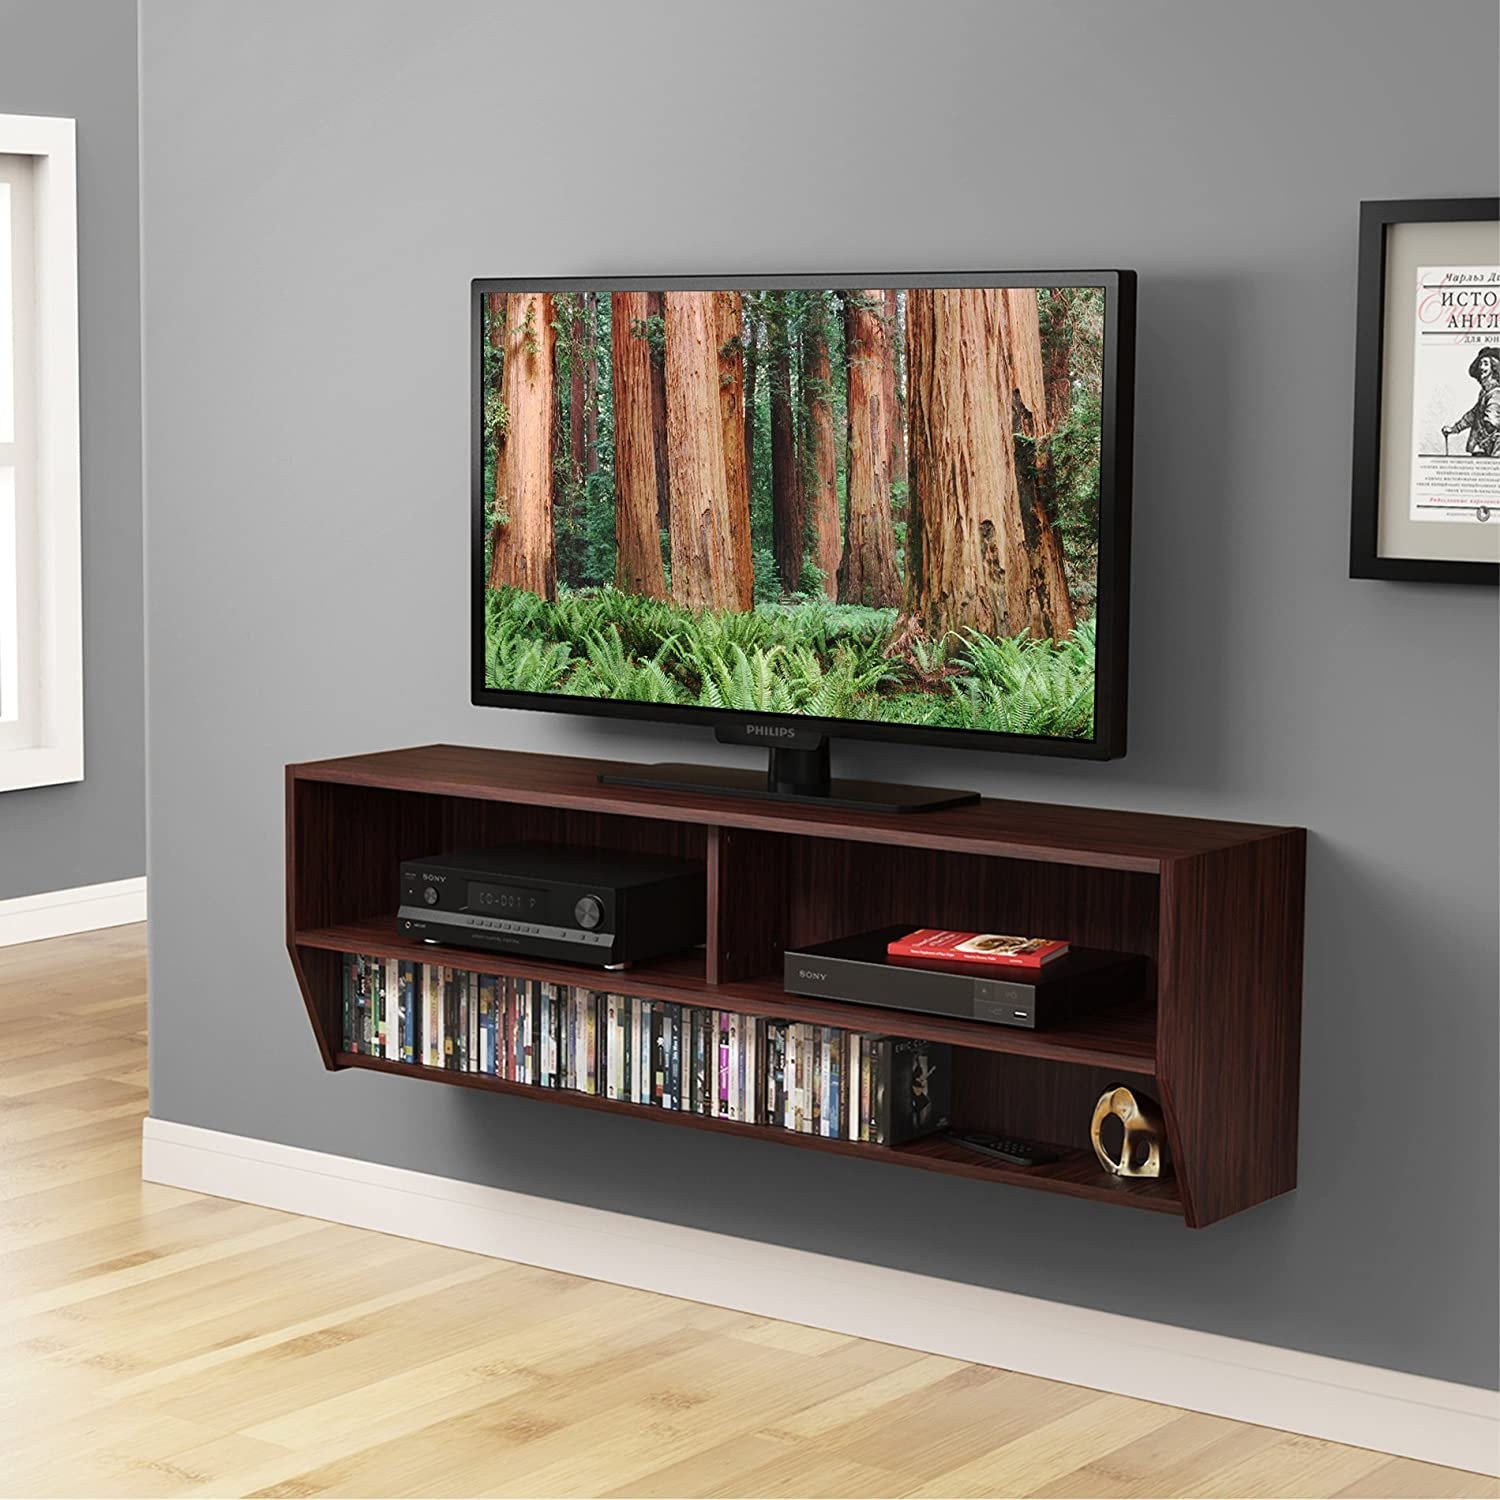 Superbe Amazon.com: FITUEYES Wall Mounted Audio/Video Console Wood Grain For Xbox  One/PS4/vizio/Sumsung/sony TV.DS212301WB: Kitchen U0026 Dining